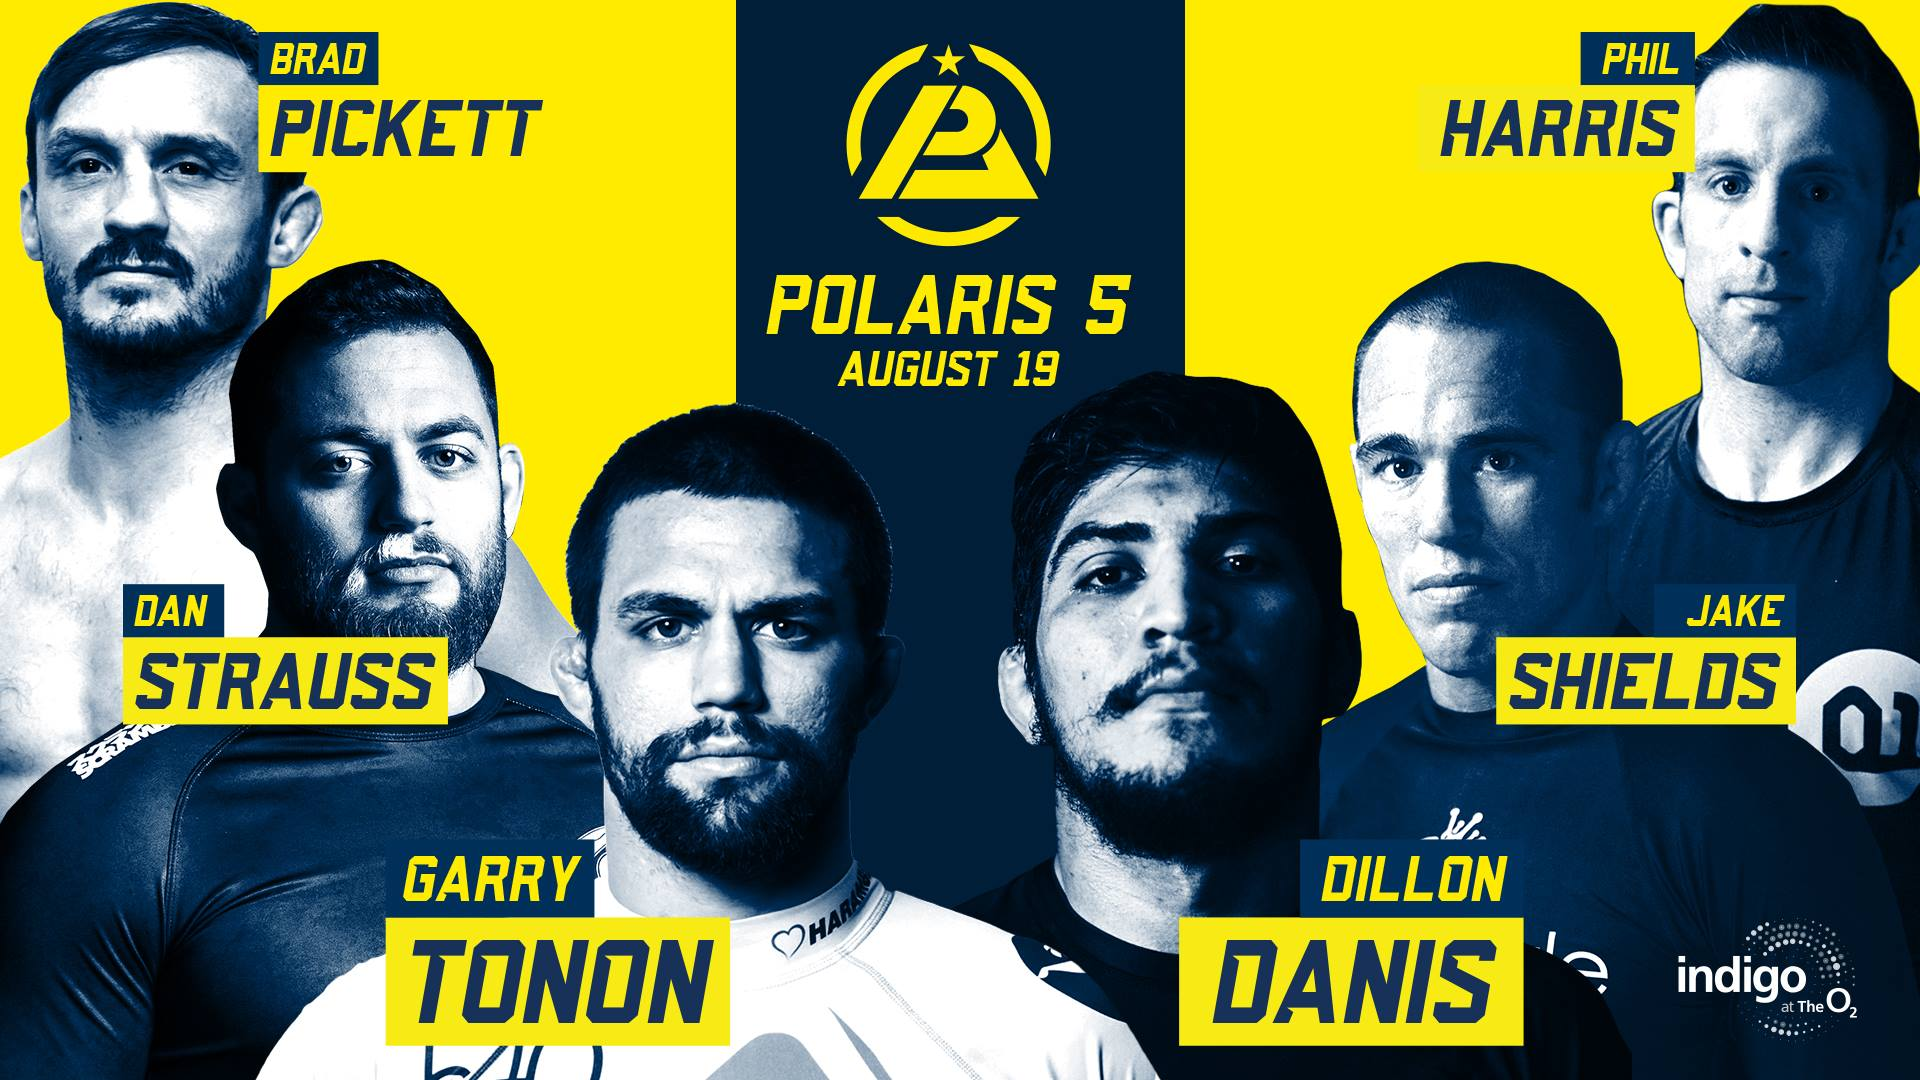 Polaris 5 Tickets